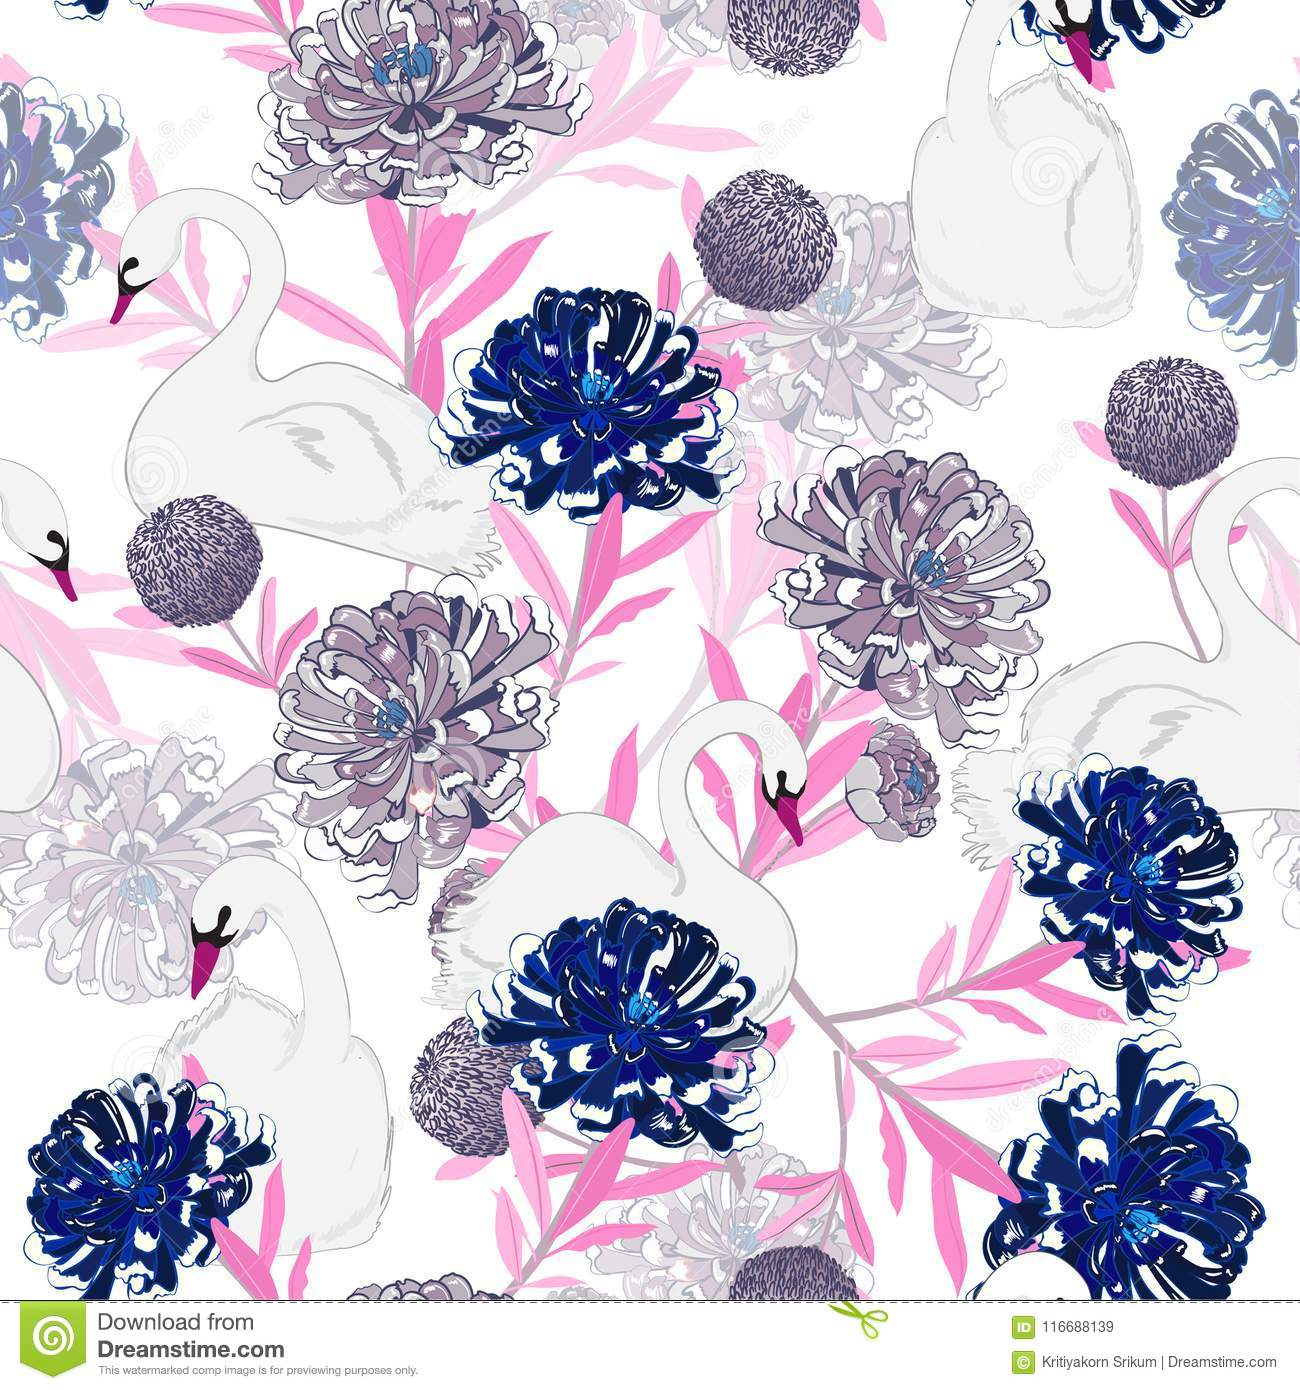 Sweet pastel Soft and gentle oreintal blooming flowers with hand